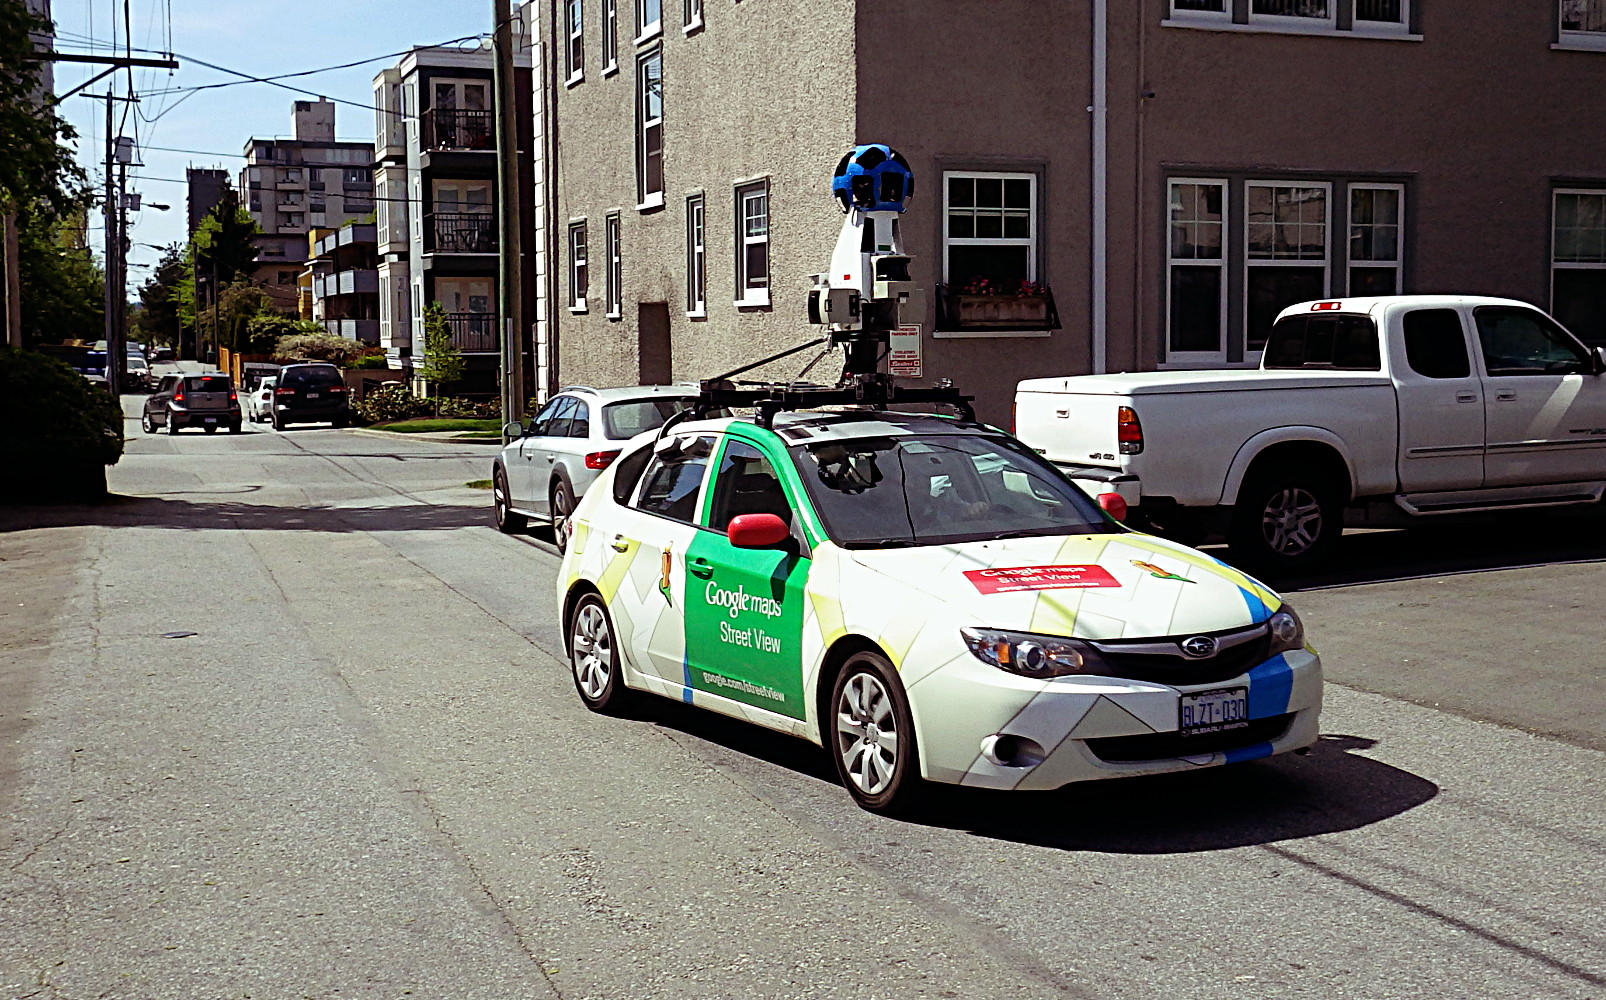 google maps burnaby with Google Maps Street View Car In Fairview on Maps moreover Google Maps Street View Car In Fairview additionally 6 Bedroom House Rental 842 West 59th Vancouver likewise 120158 additionally Central Park Entire.